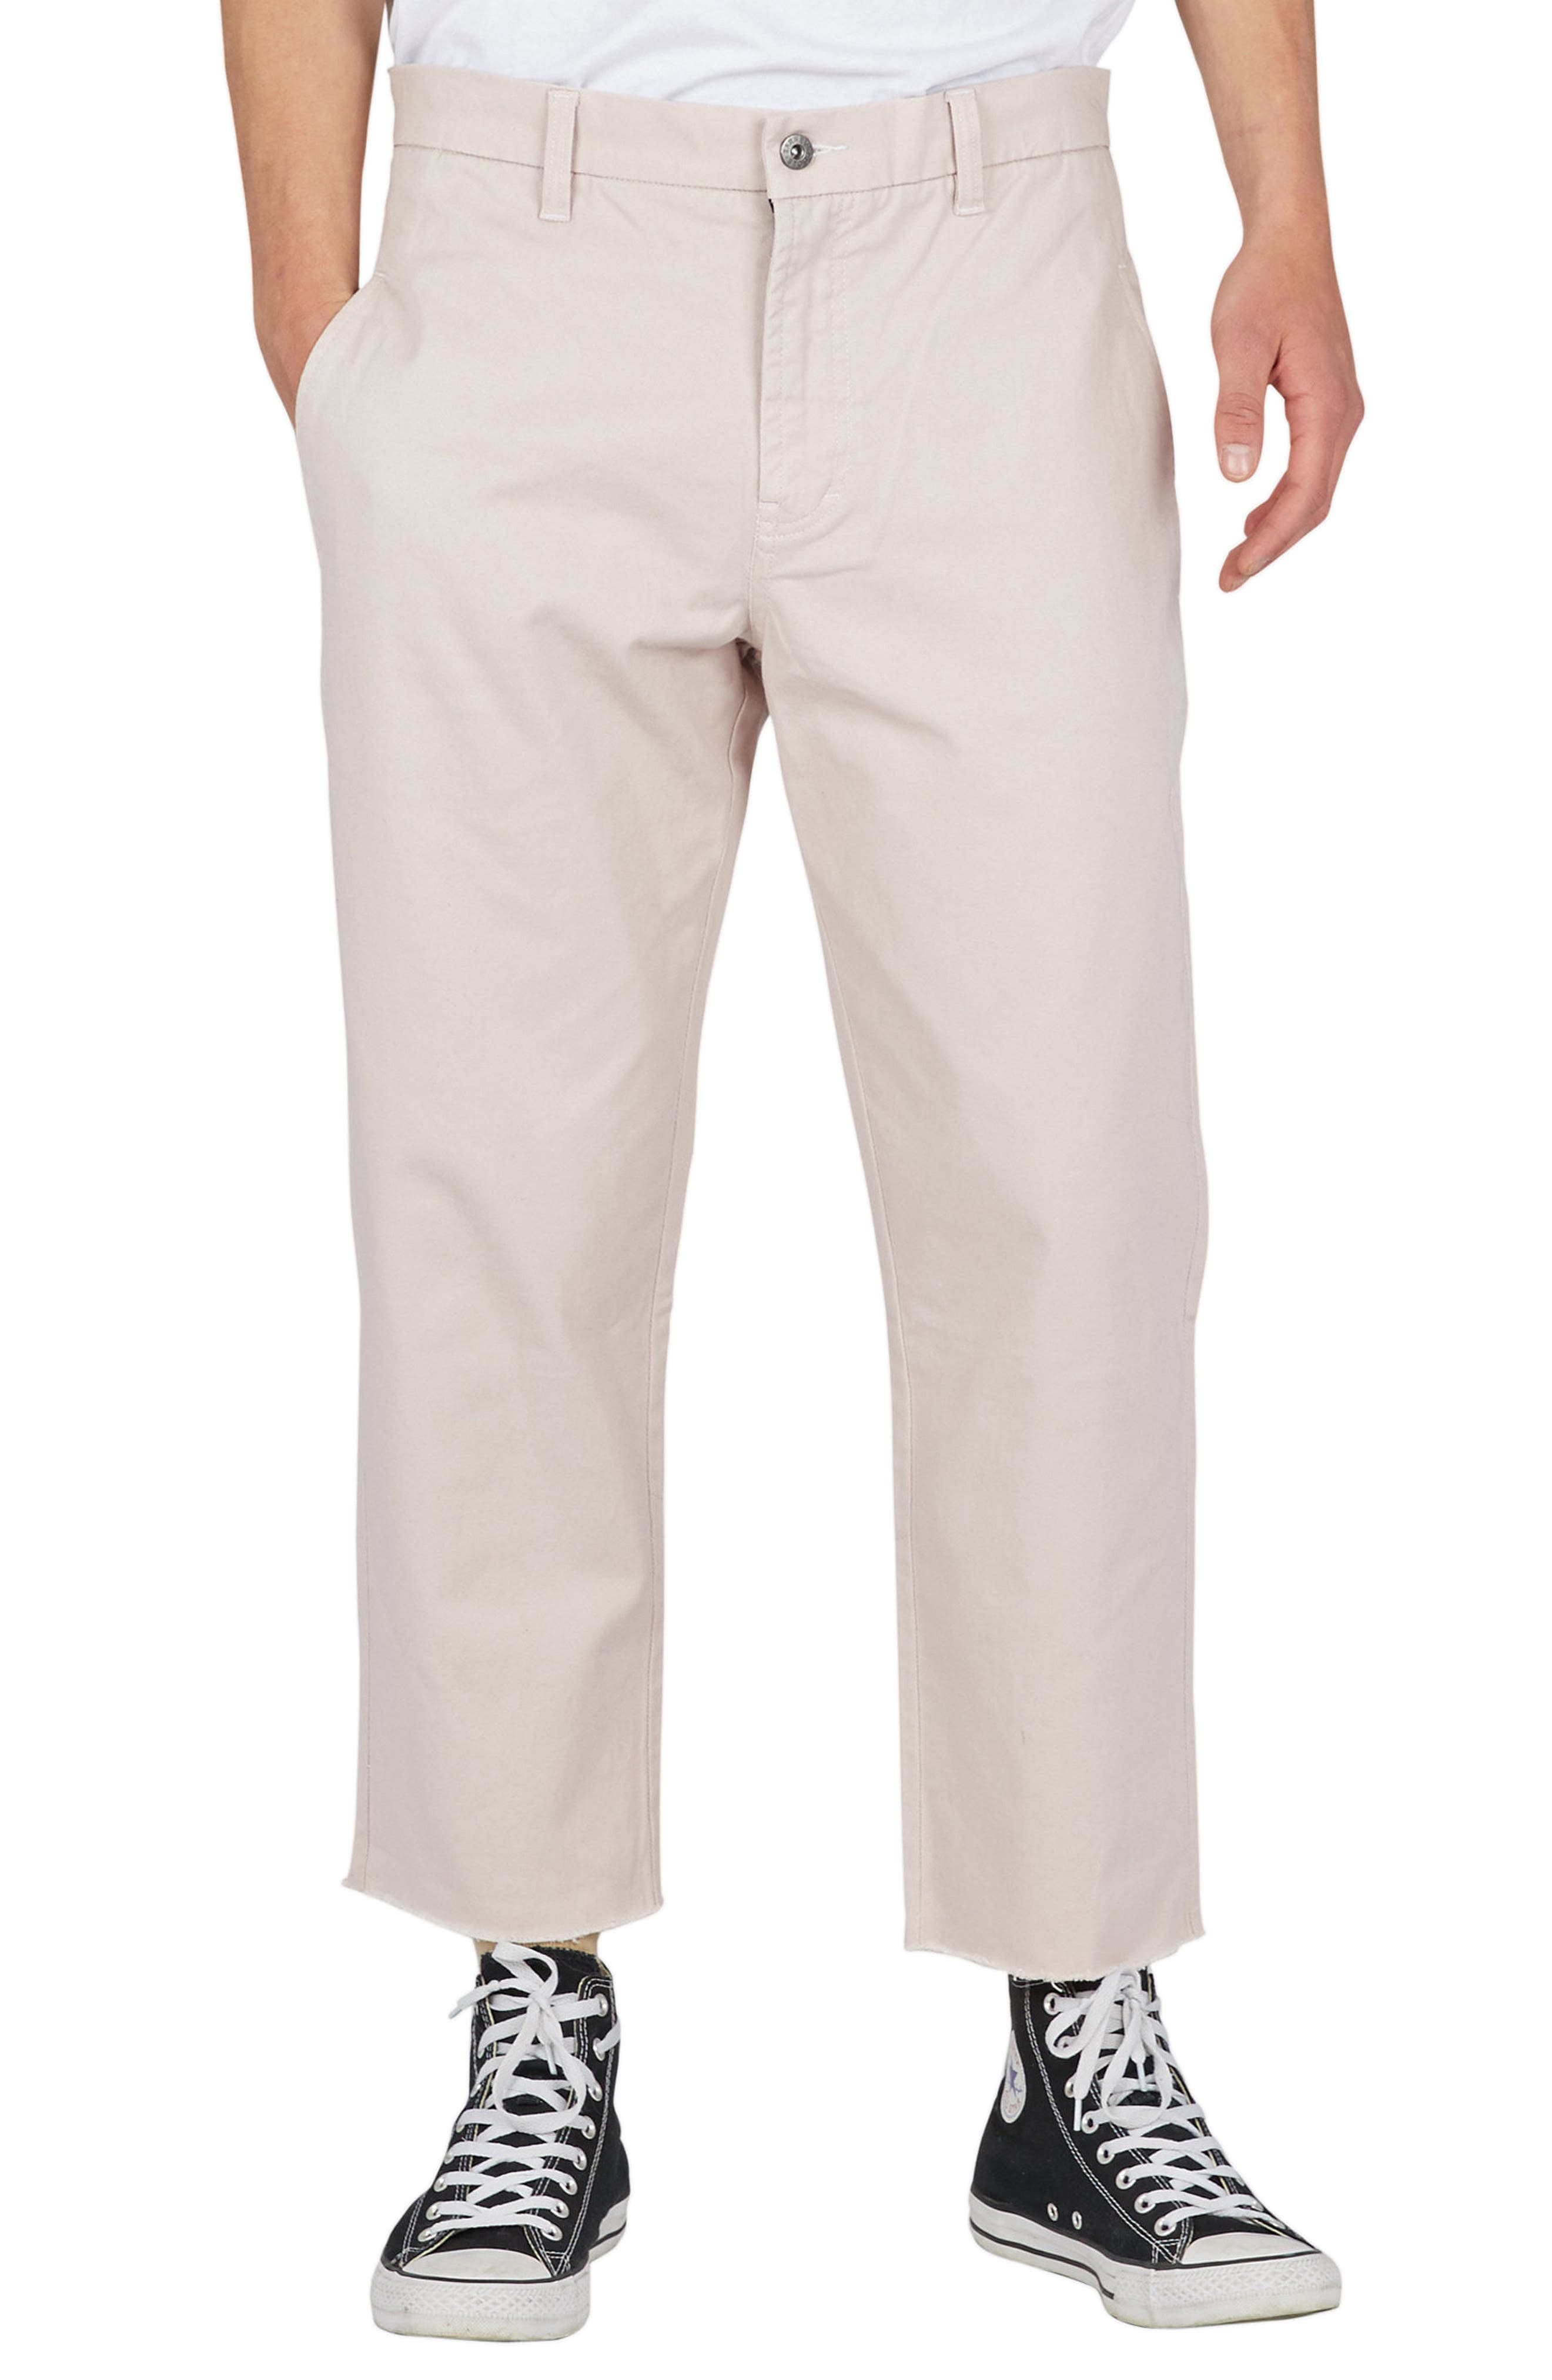 Barney Cools B. Chodus Chino Pants